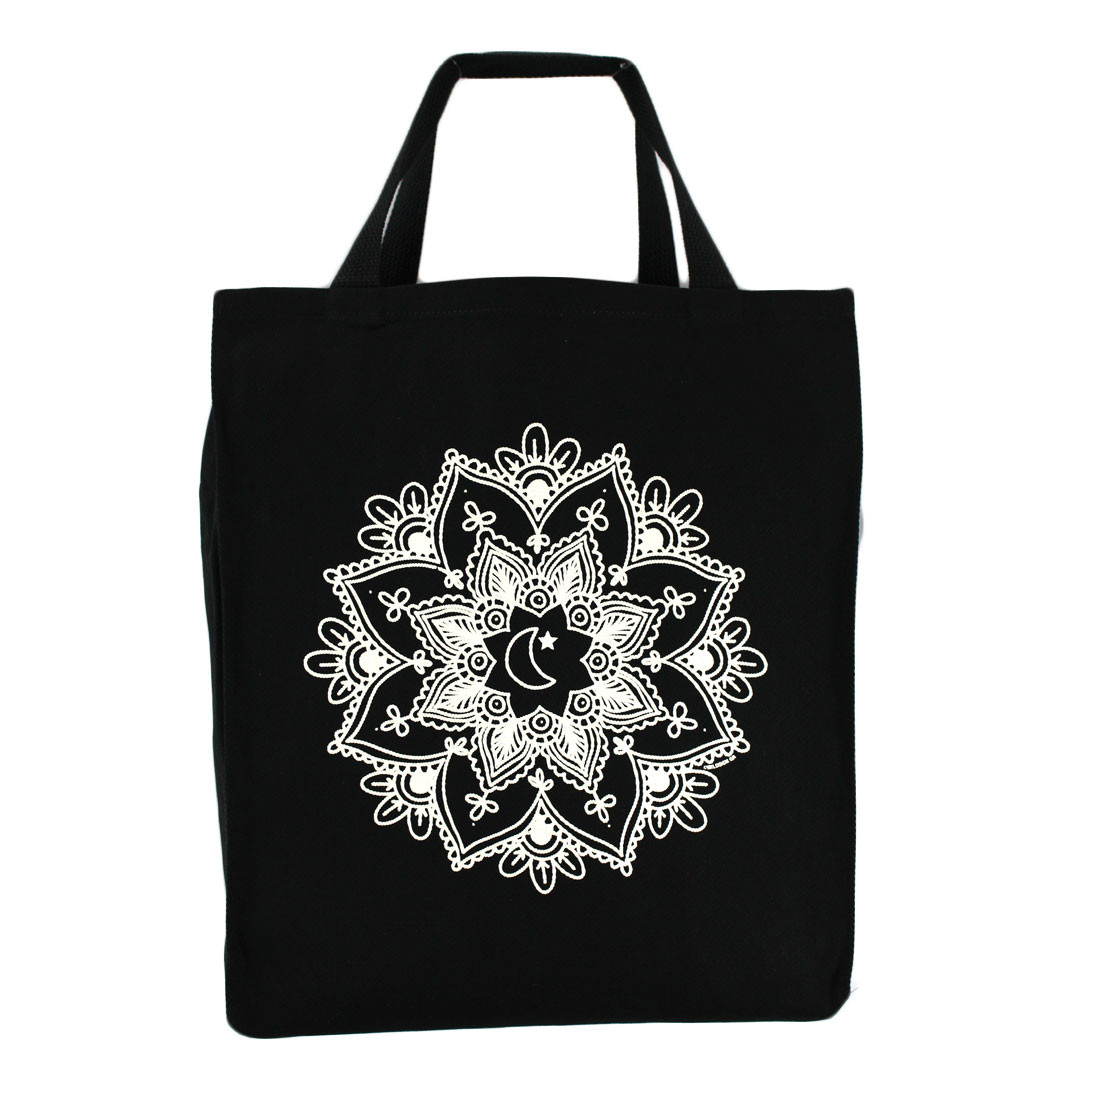 White mandala on cotton twill grocery tote bag.